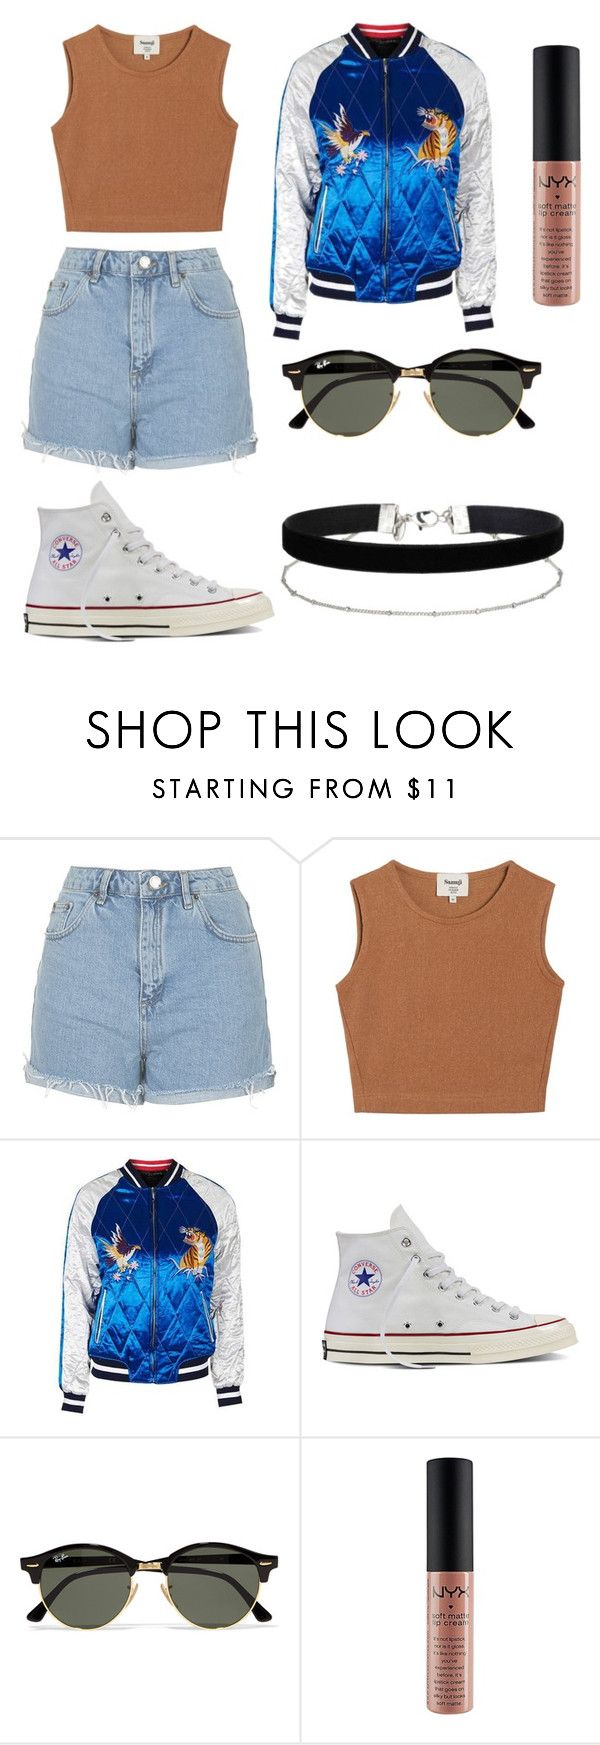 """vintage"" by alexa-str on Polyvore featuring Topshop, Samuji, Converse, Ray-Ban, Miss Selfridge and vintage"